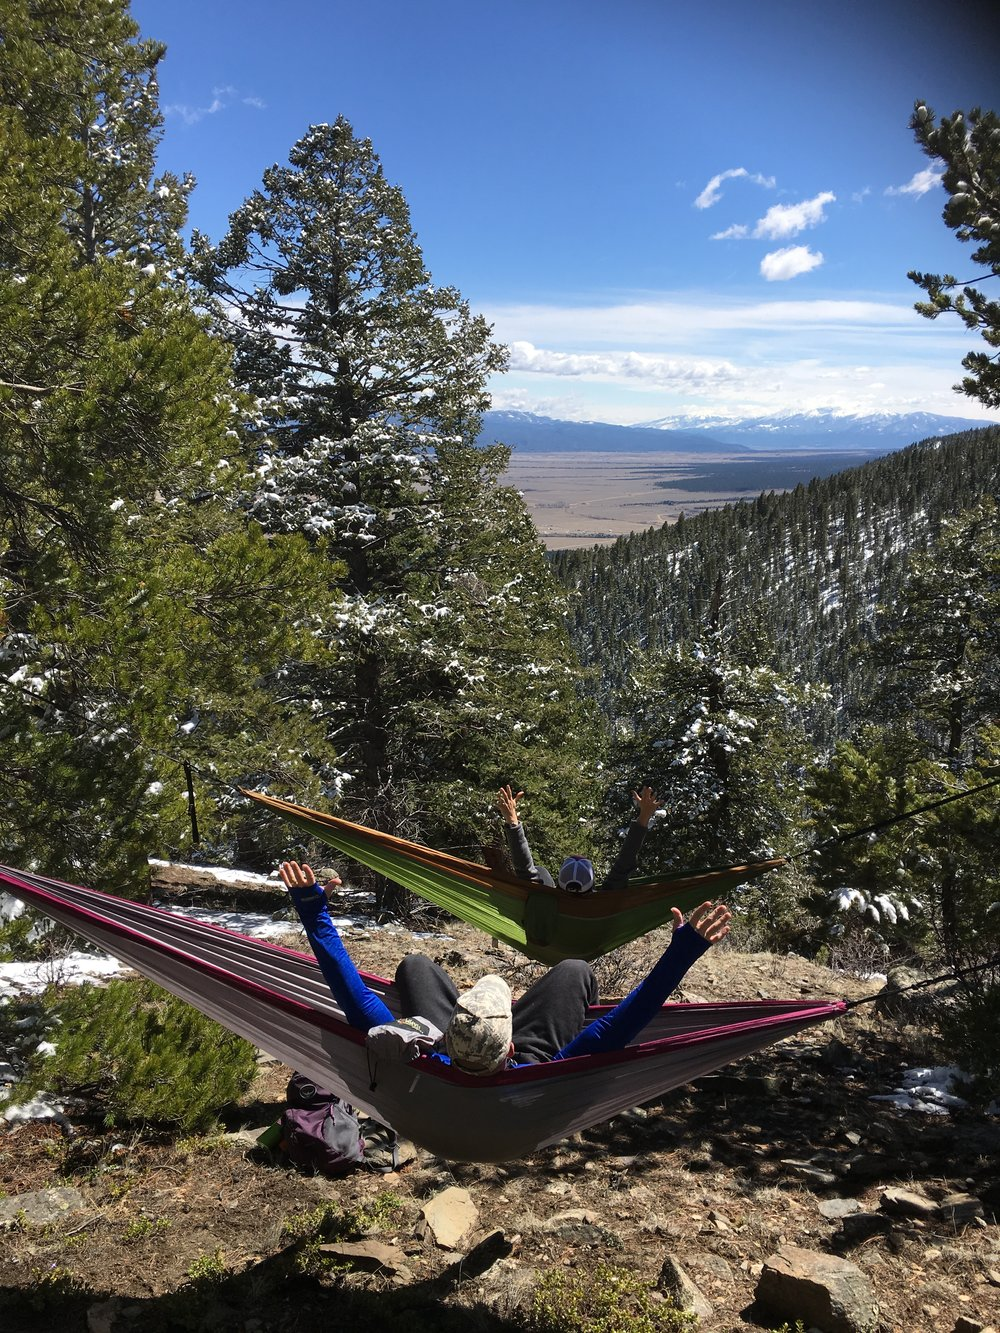 Hobo Hammocks makes a perfect double hammock for home, family vacation, and camping.   Move over Eno, here's 11 reasons to this complete hanging system rocks.